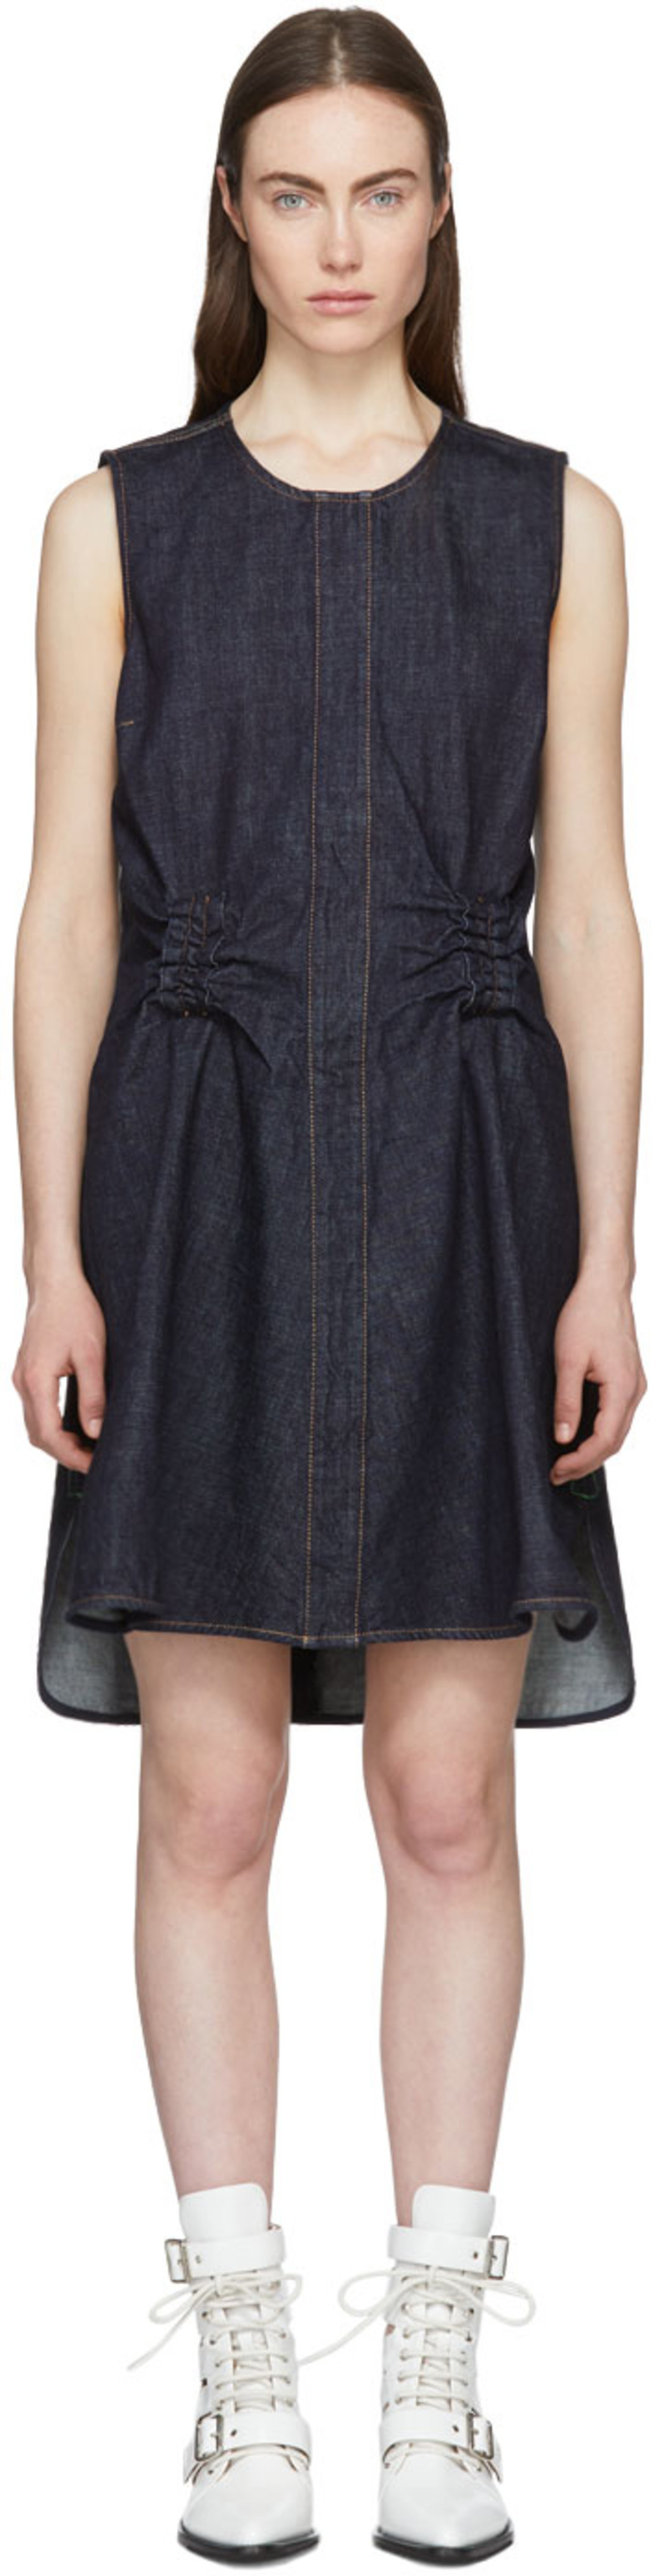 Indigo Denim Twist Back Dress Carven Q5dz5J0